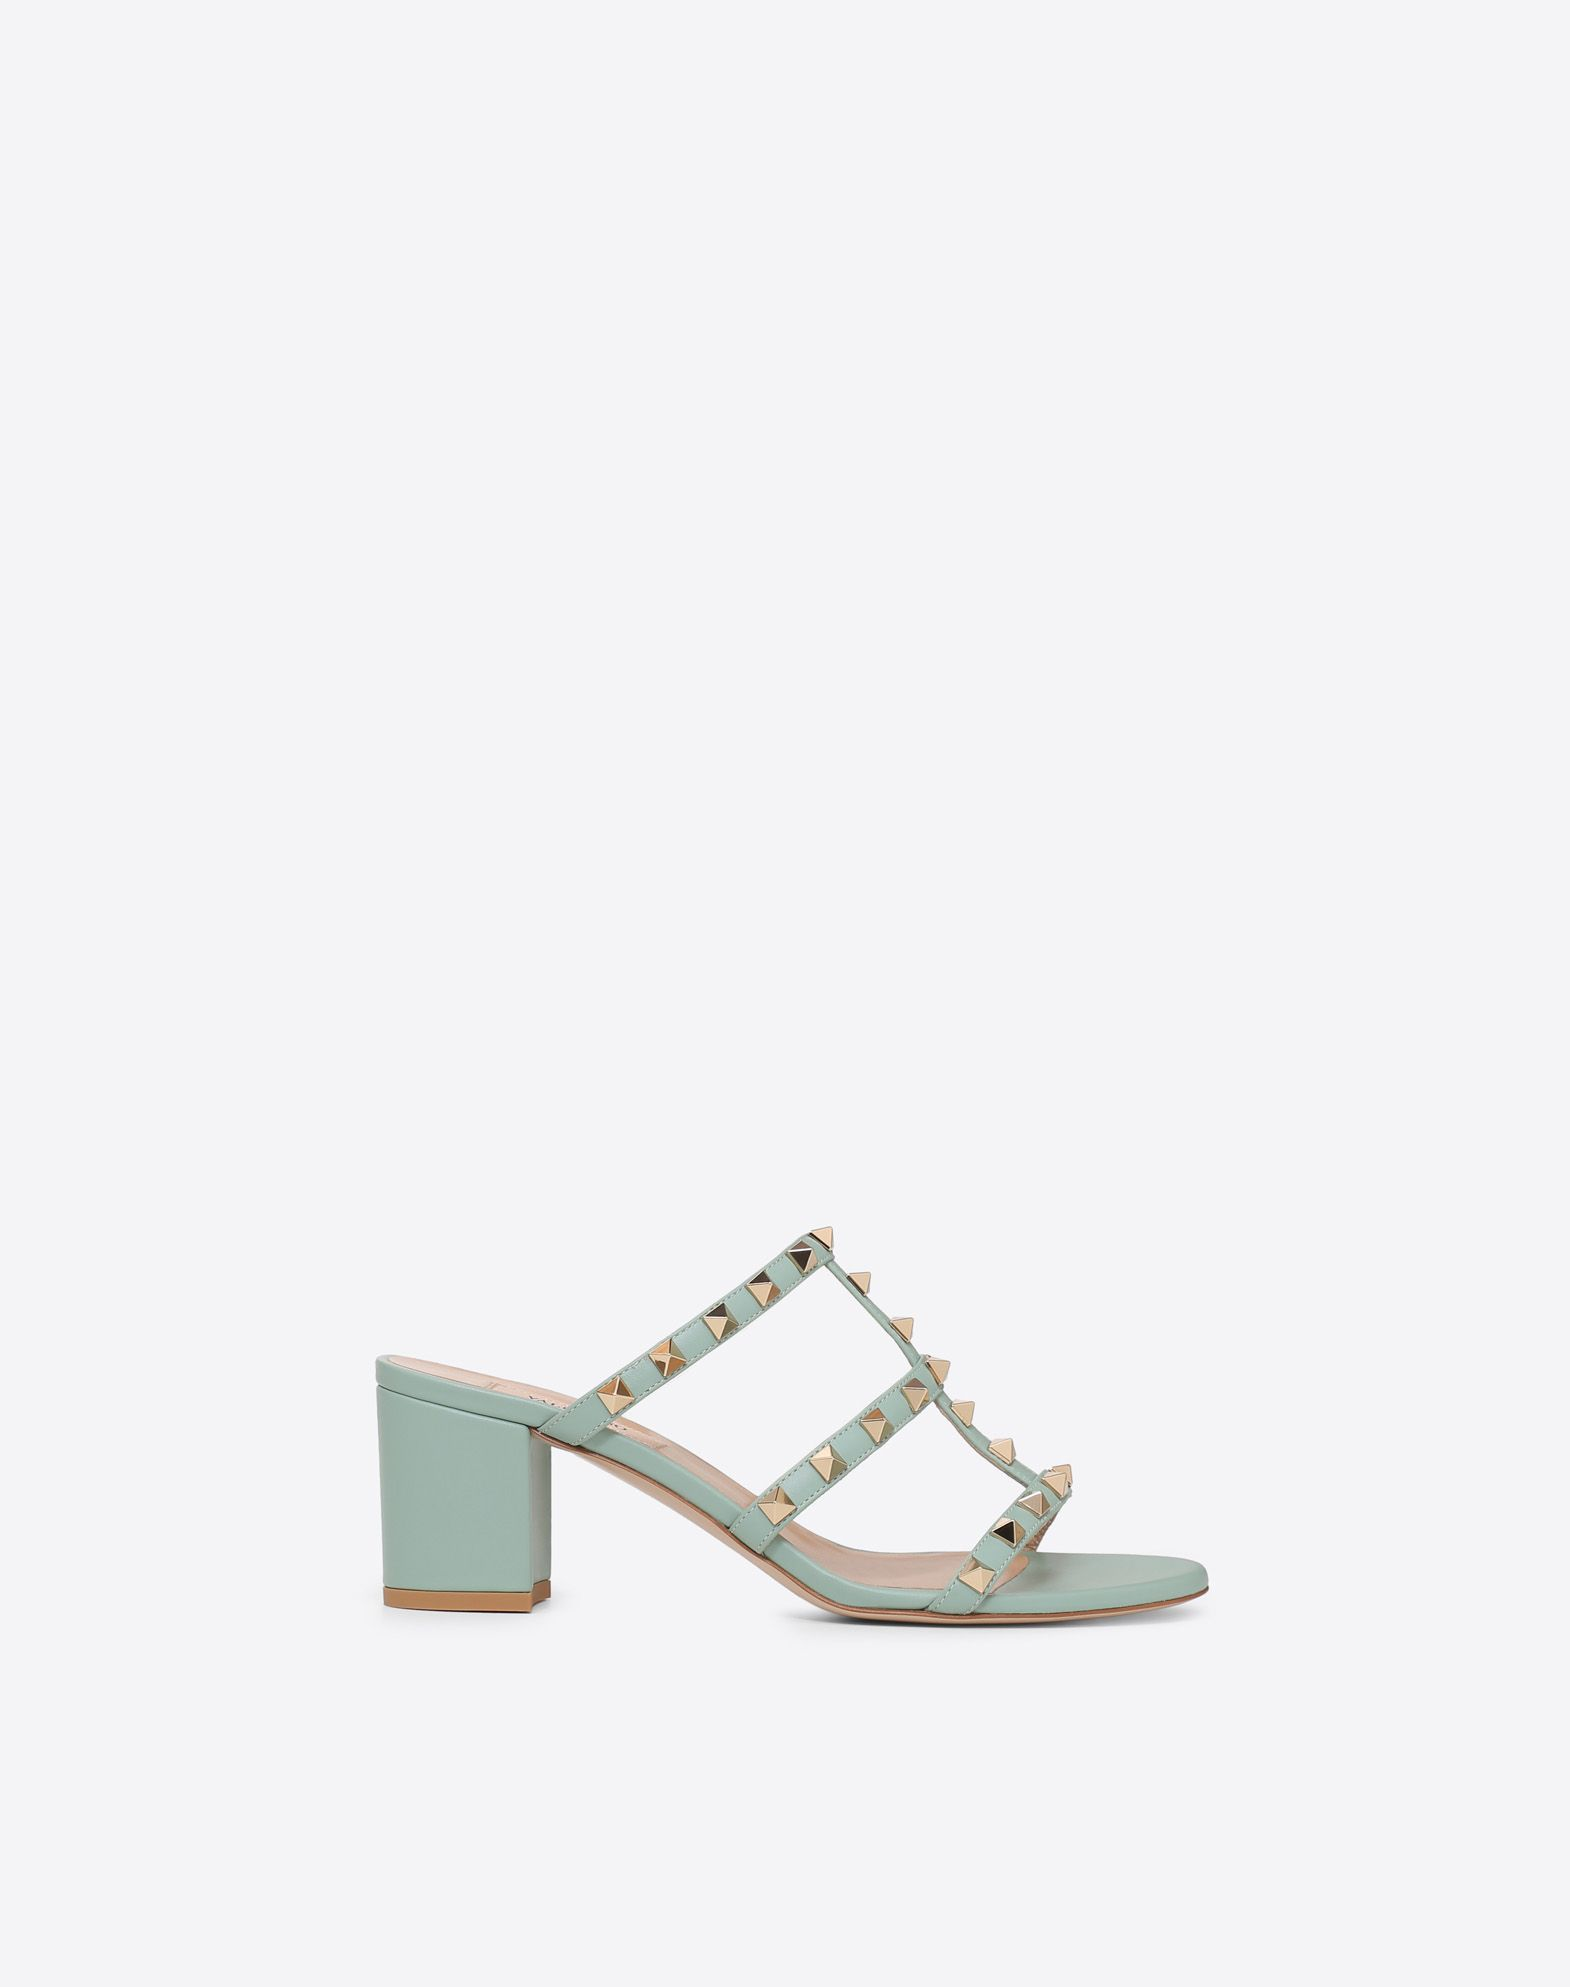 VALENTINO Leather Metal Applications Solid color Leather sole Round toeline Square heel  11445935bu